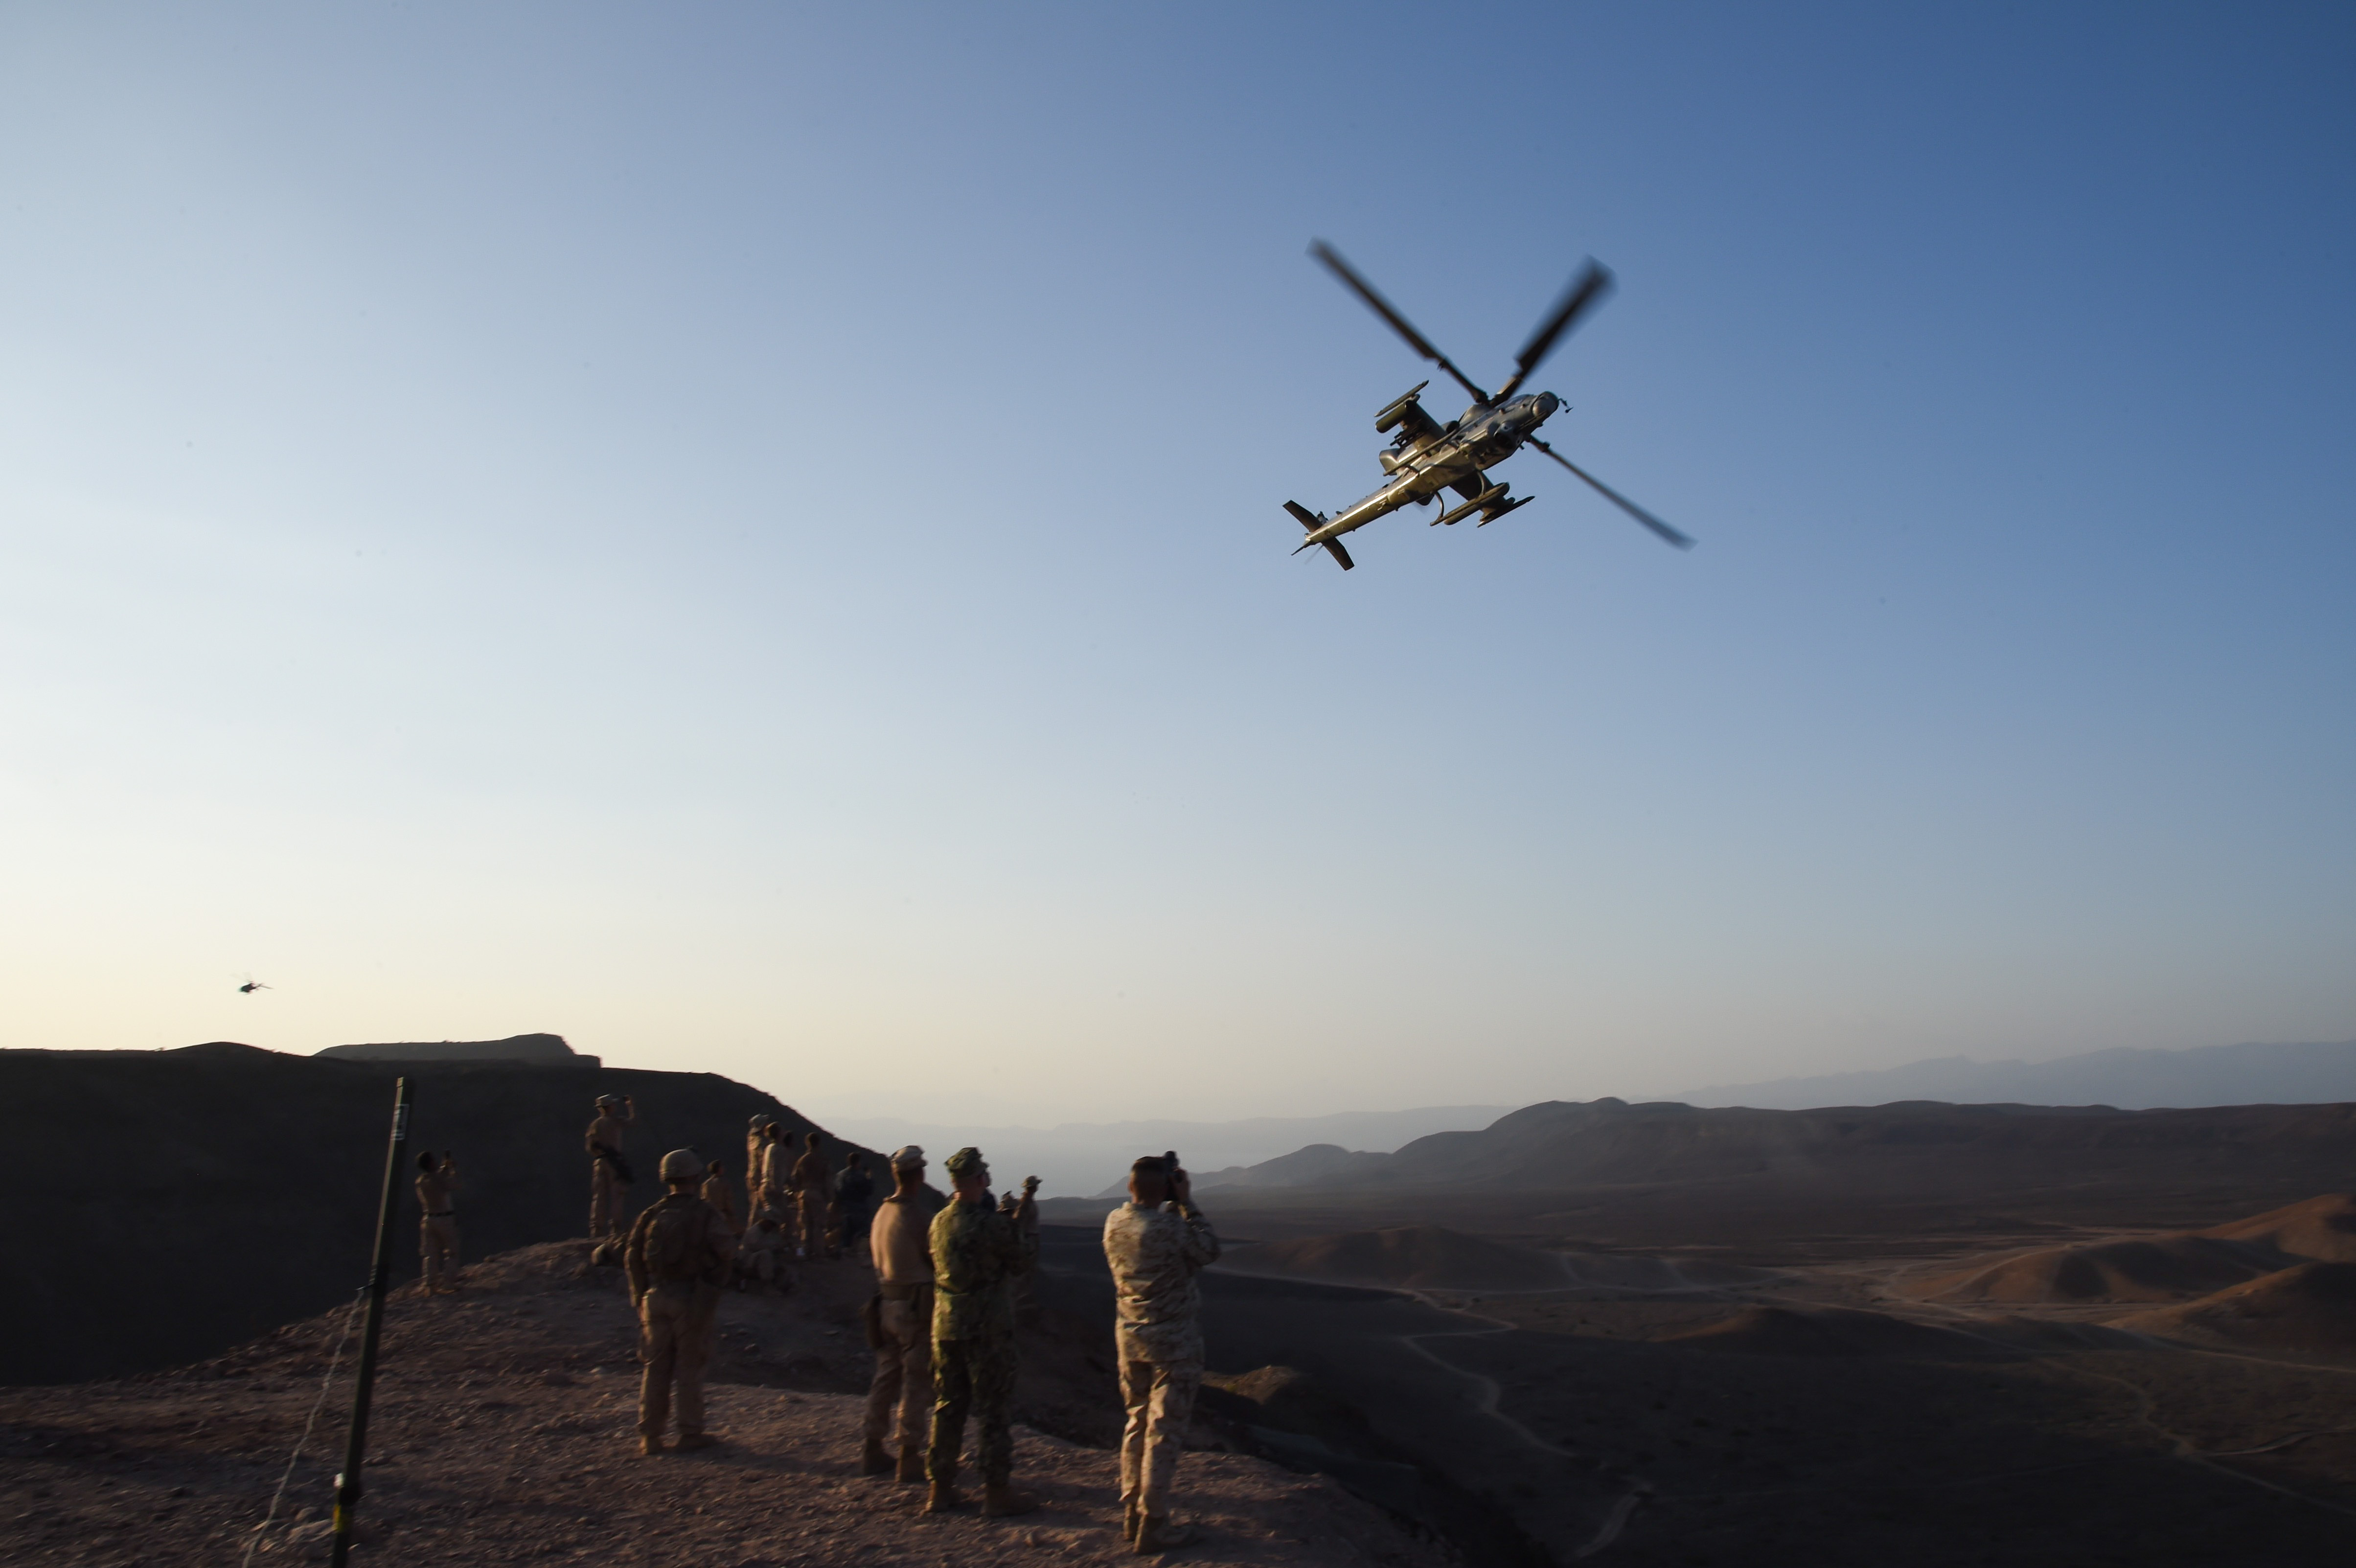 U.S. Marine Corps members with the11th Marine Expeditionary Unit (MEU), and Sailors from the Makin Island Amphibious Ready Group, watch a Super Cobra attack helicopter fly over after a helo-borne raid on the range during Exercise Alligator Dagger, Dec. 18, 2016, at Arta Plage, Djibouti. The exercise allows opportunities for the 11th MEU to maintain their respective skills and proficiencies while intermittently participating in bilateral training with the French. (U.S. Air National Guard photo by Staff Sgt. Penny Snoozy)